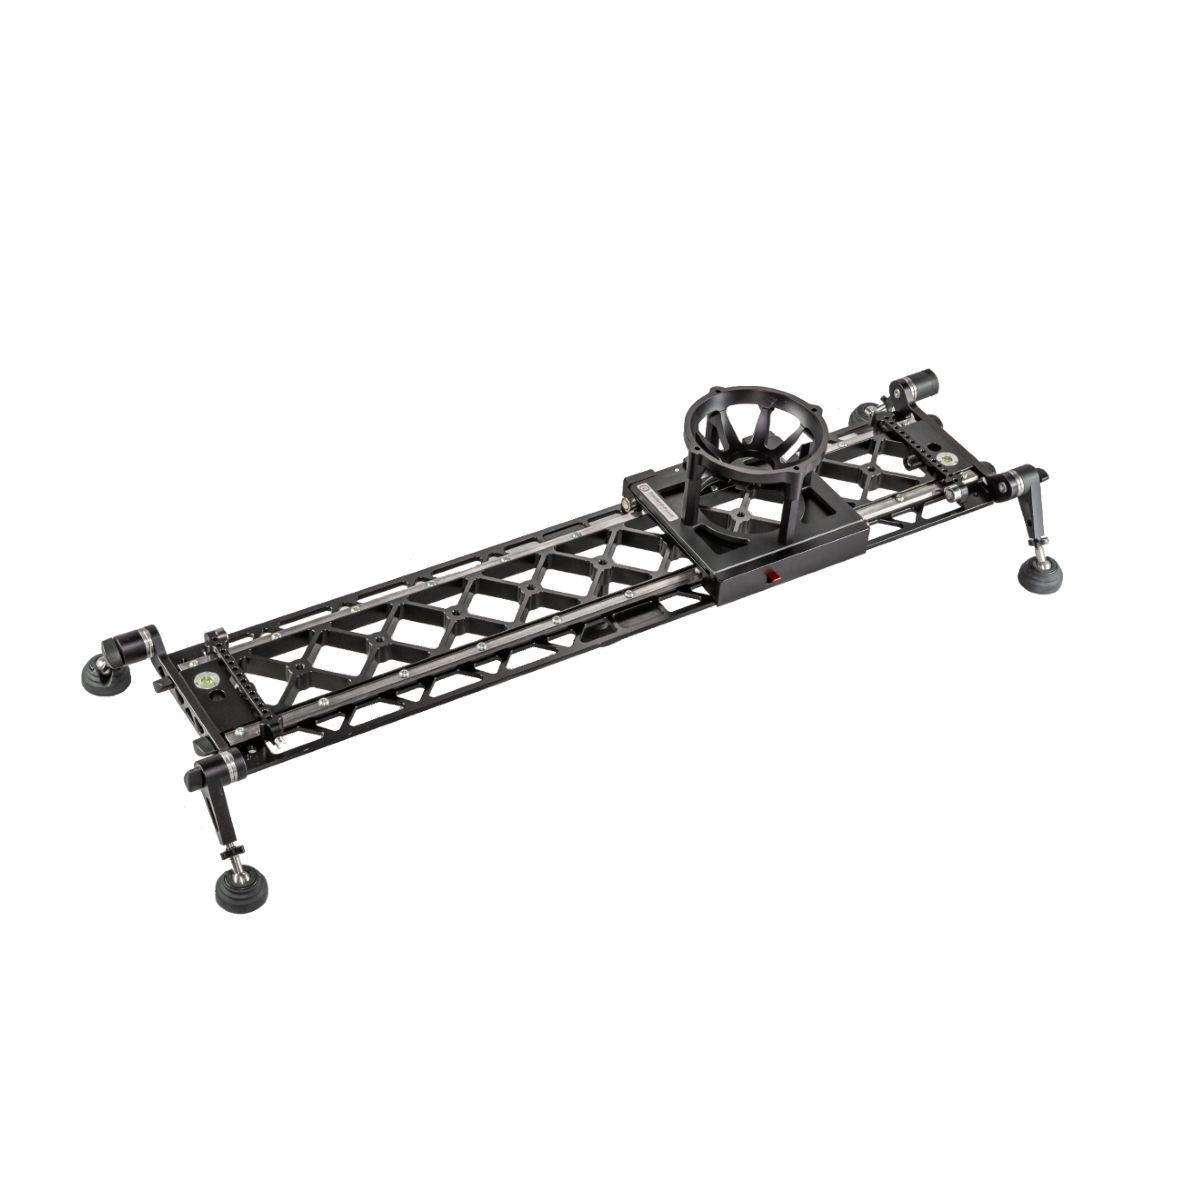 Ronford-Baker-3ft-Lightweight-Slider